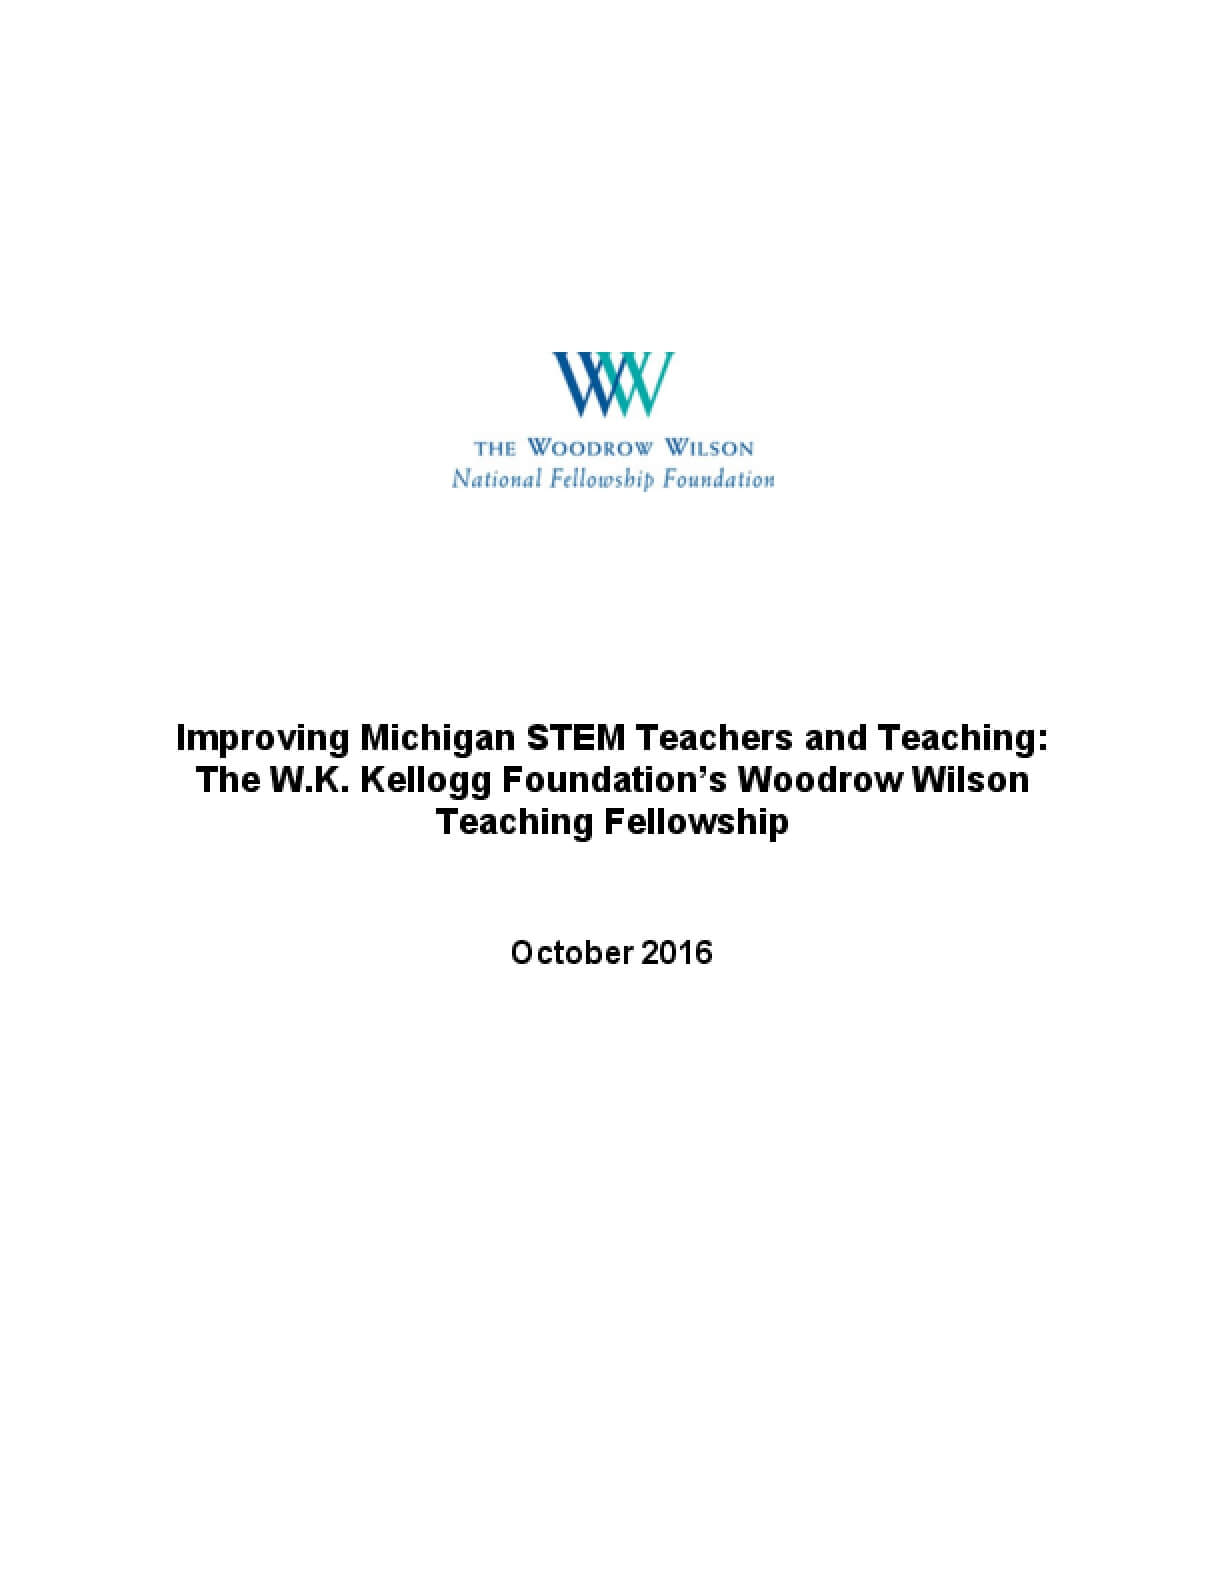 Improving Michigan STEM Teachers and Teaching: The W.K. Kellogg Foundation's Woodrow Wilson Teaching Fellowship